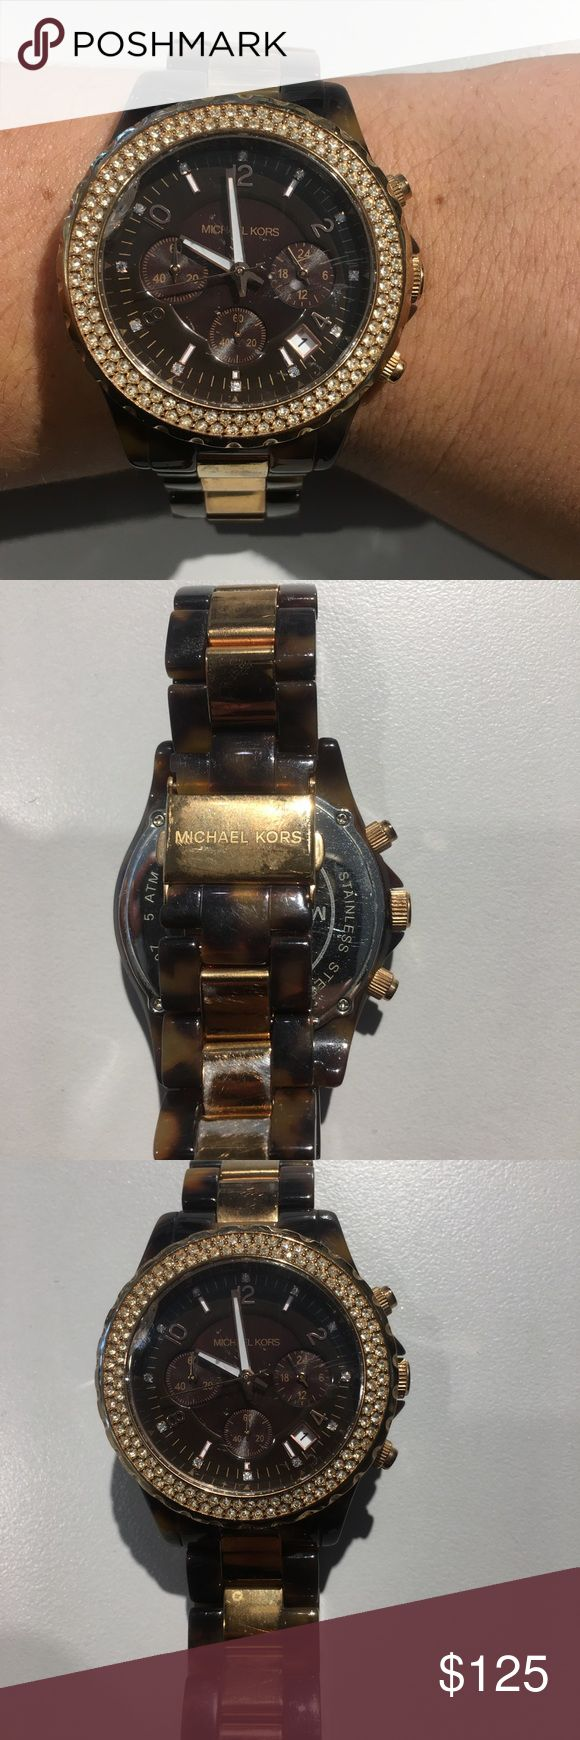 Michael kors Lexington tortoise watch Used, has scratches not too noticeable when wearing. Mark on the face Michael Kors Accessories Watches